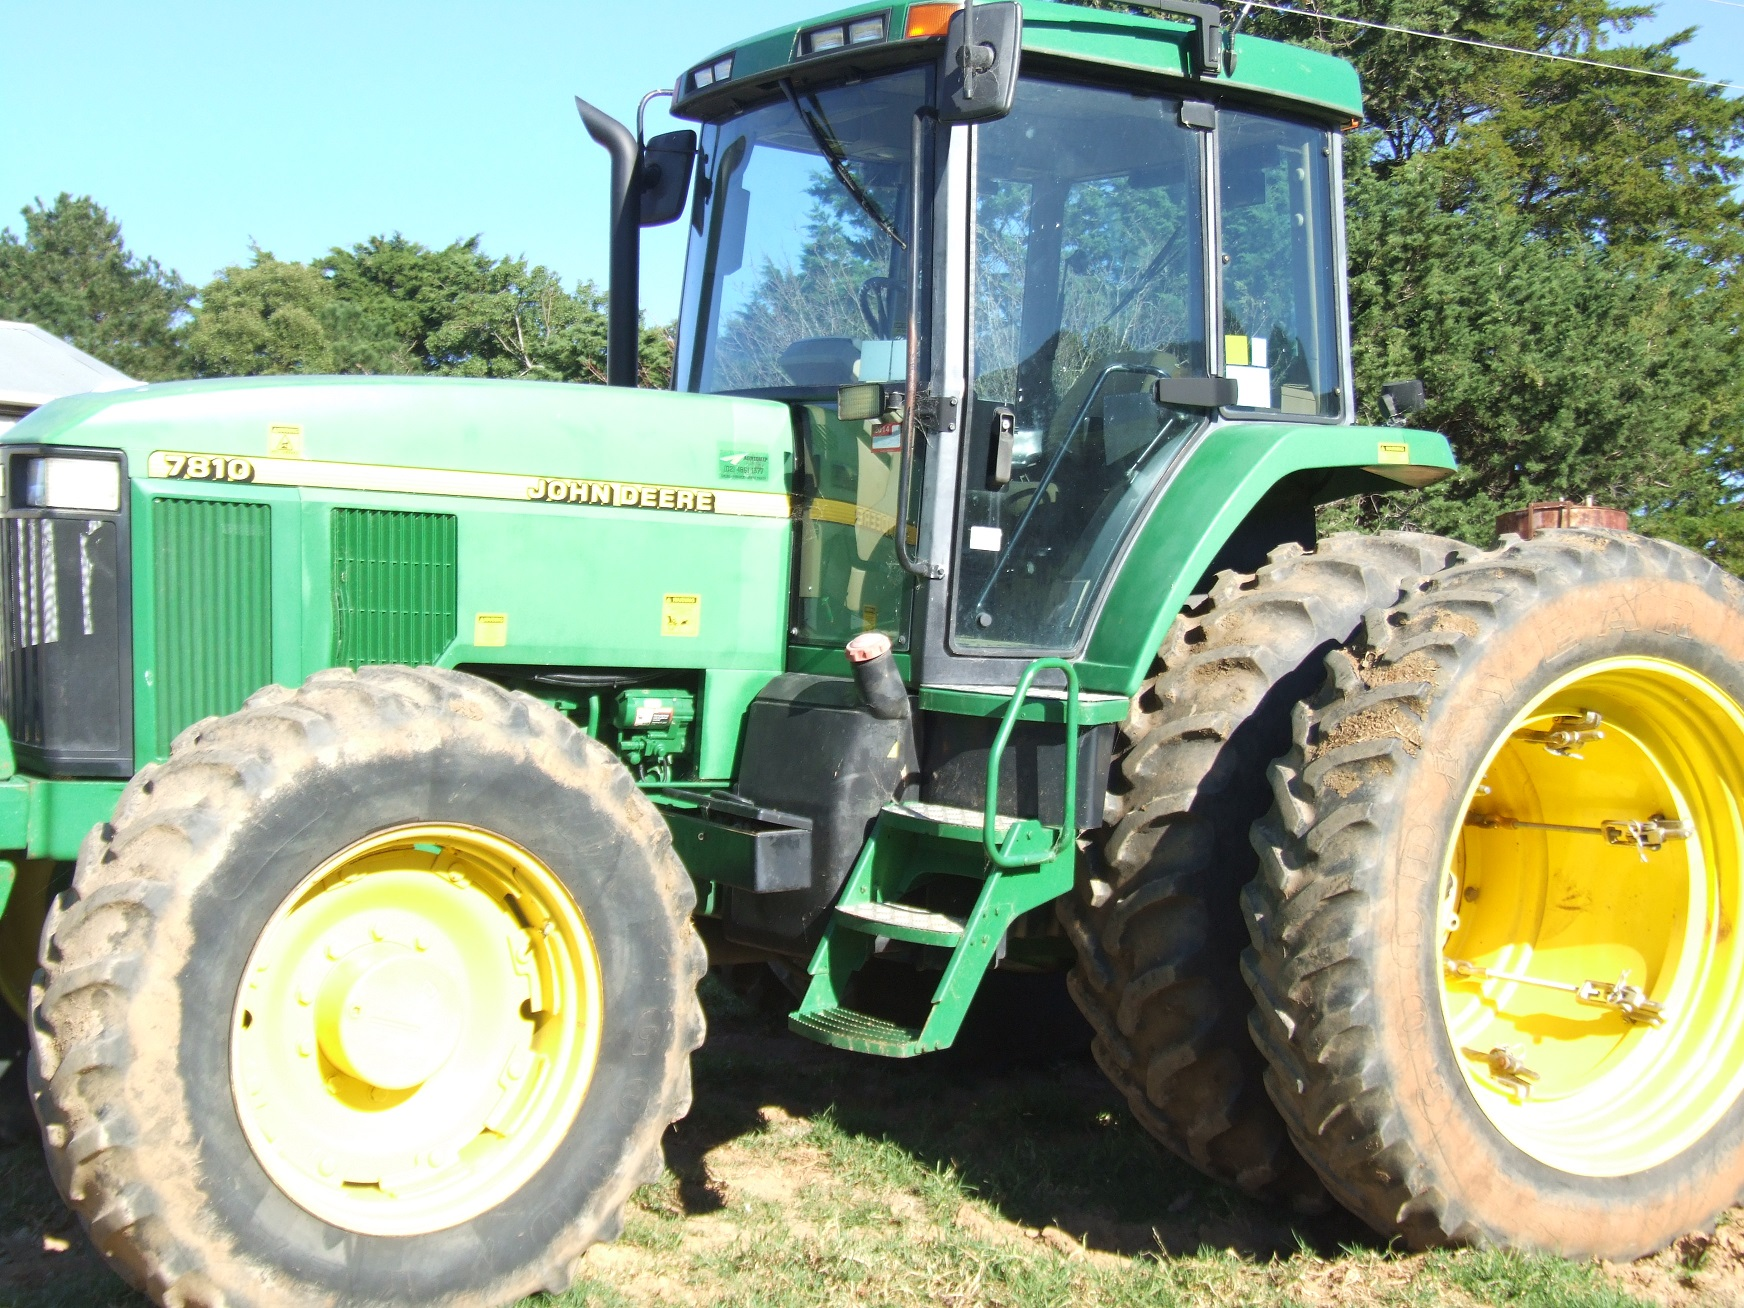 Front Duals For Tractors : Dual wheel john deere tractor price drop machinery